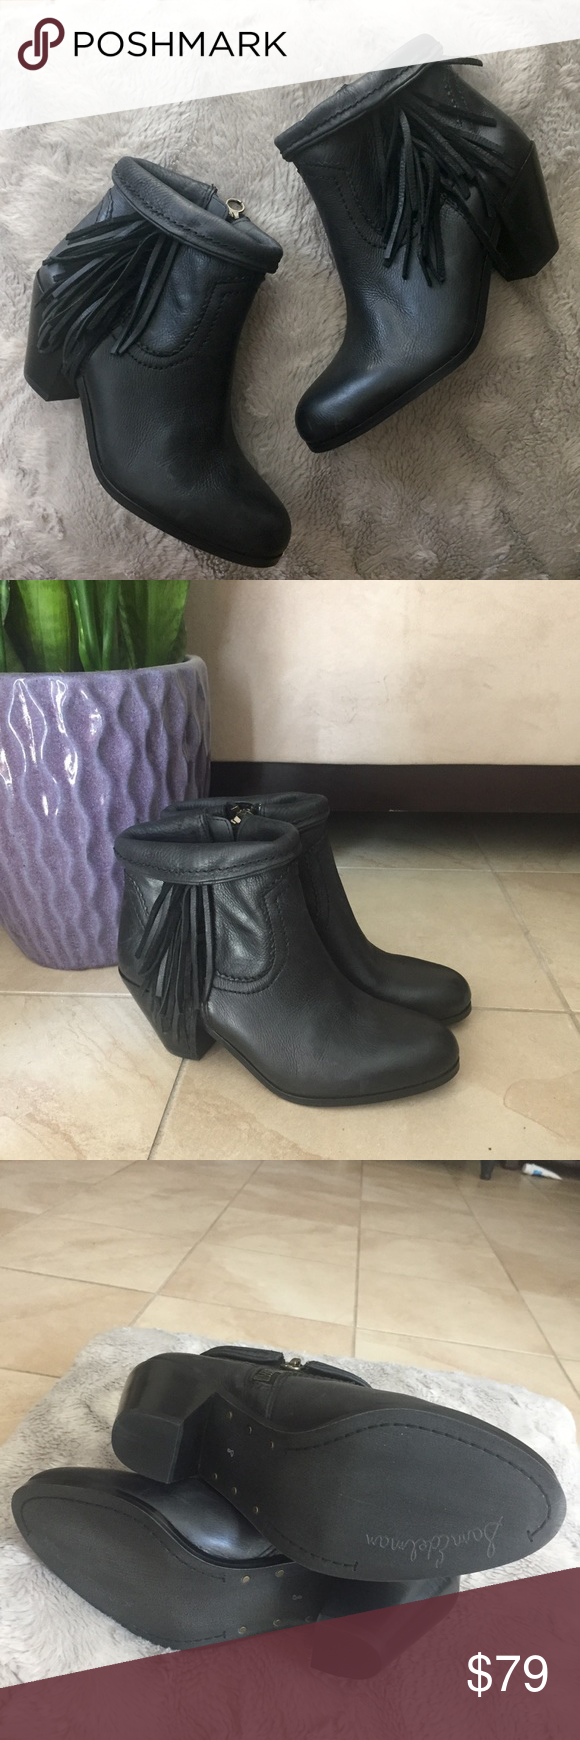 """NEW Sam Edelman Louie black leather fringe booties New without tags/box Sam Edelman Louie ankle boots with fringe detail. Western style booties with inner ankle zip, outer fringe, and can be cuffed at top (as pictured). Genuine leather. 3"""" block heel. Size 8. Sam Edelman Shoes Ankle Boots & Booties"""